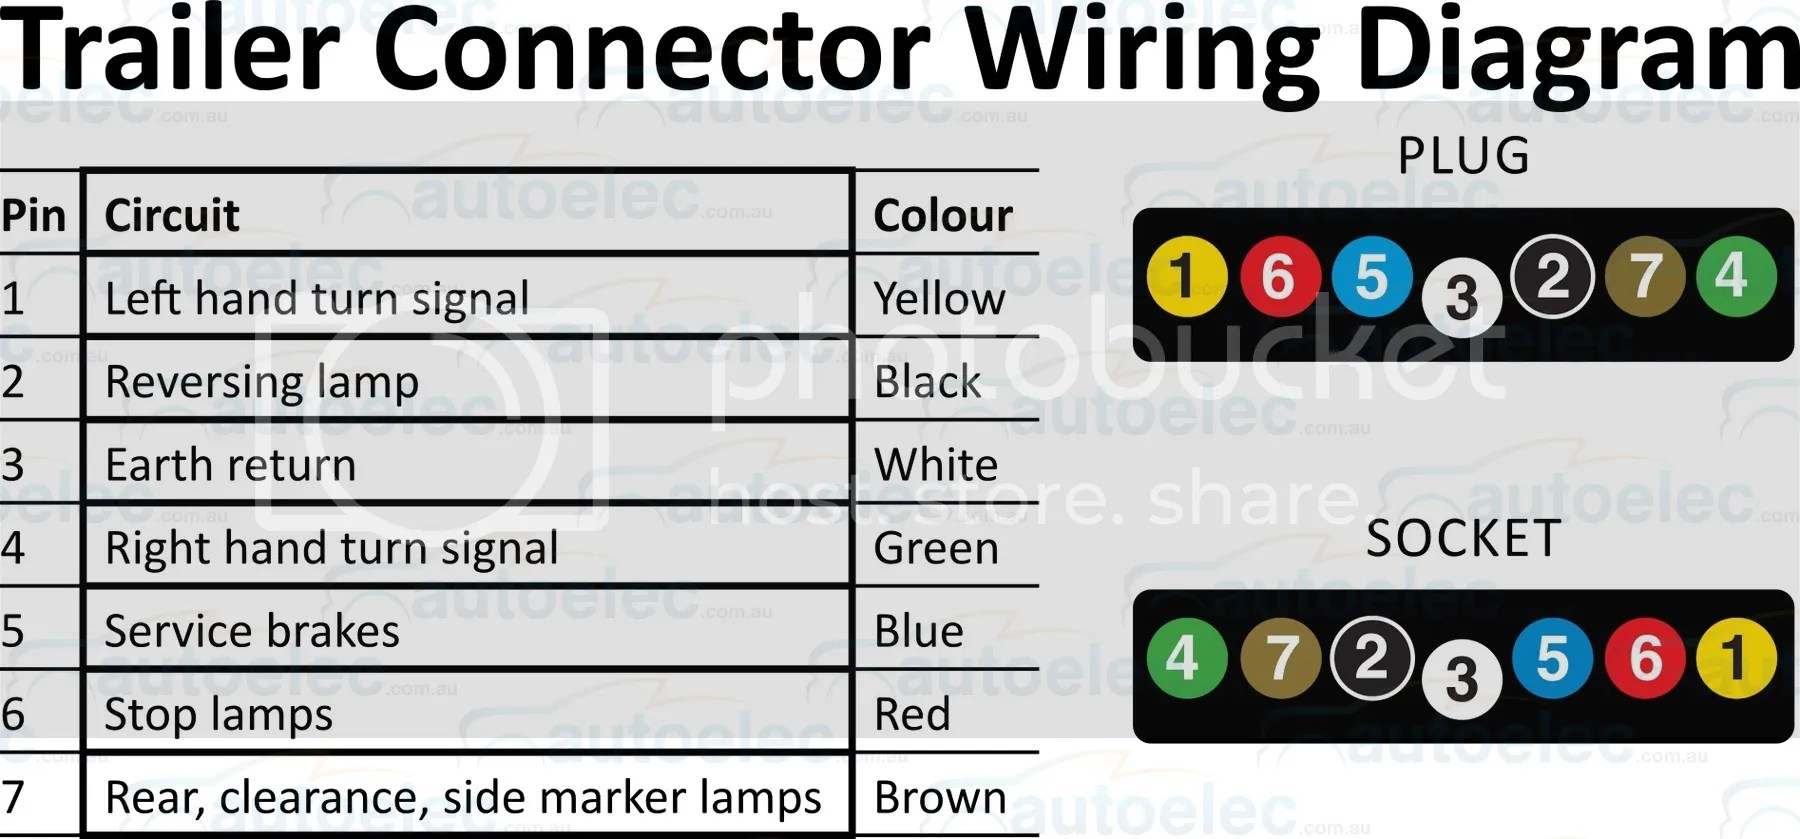 Trailer Connector Wiring Diagrams?resize\\\=840%2C391 7 flat wiring diagram & wiring diagrams round trailer plug 4 pin wiring diagram for 7 pin flat trailer plug at mifinder.co